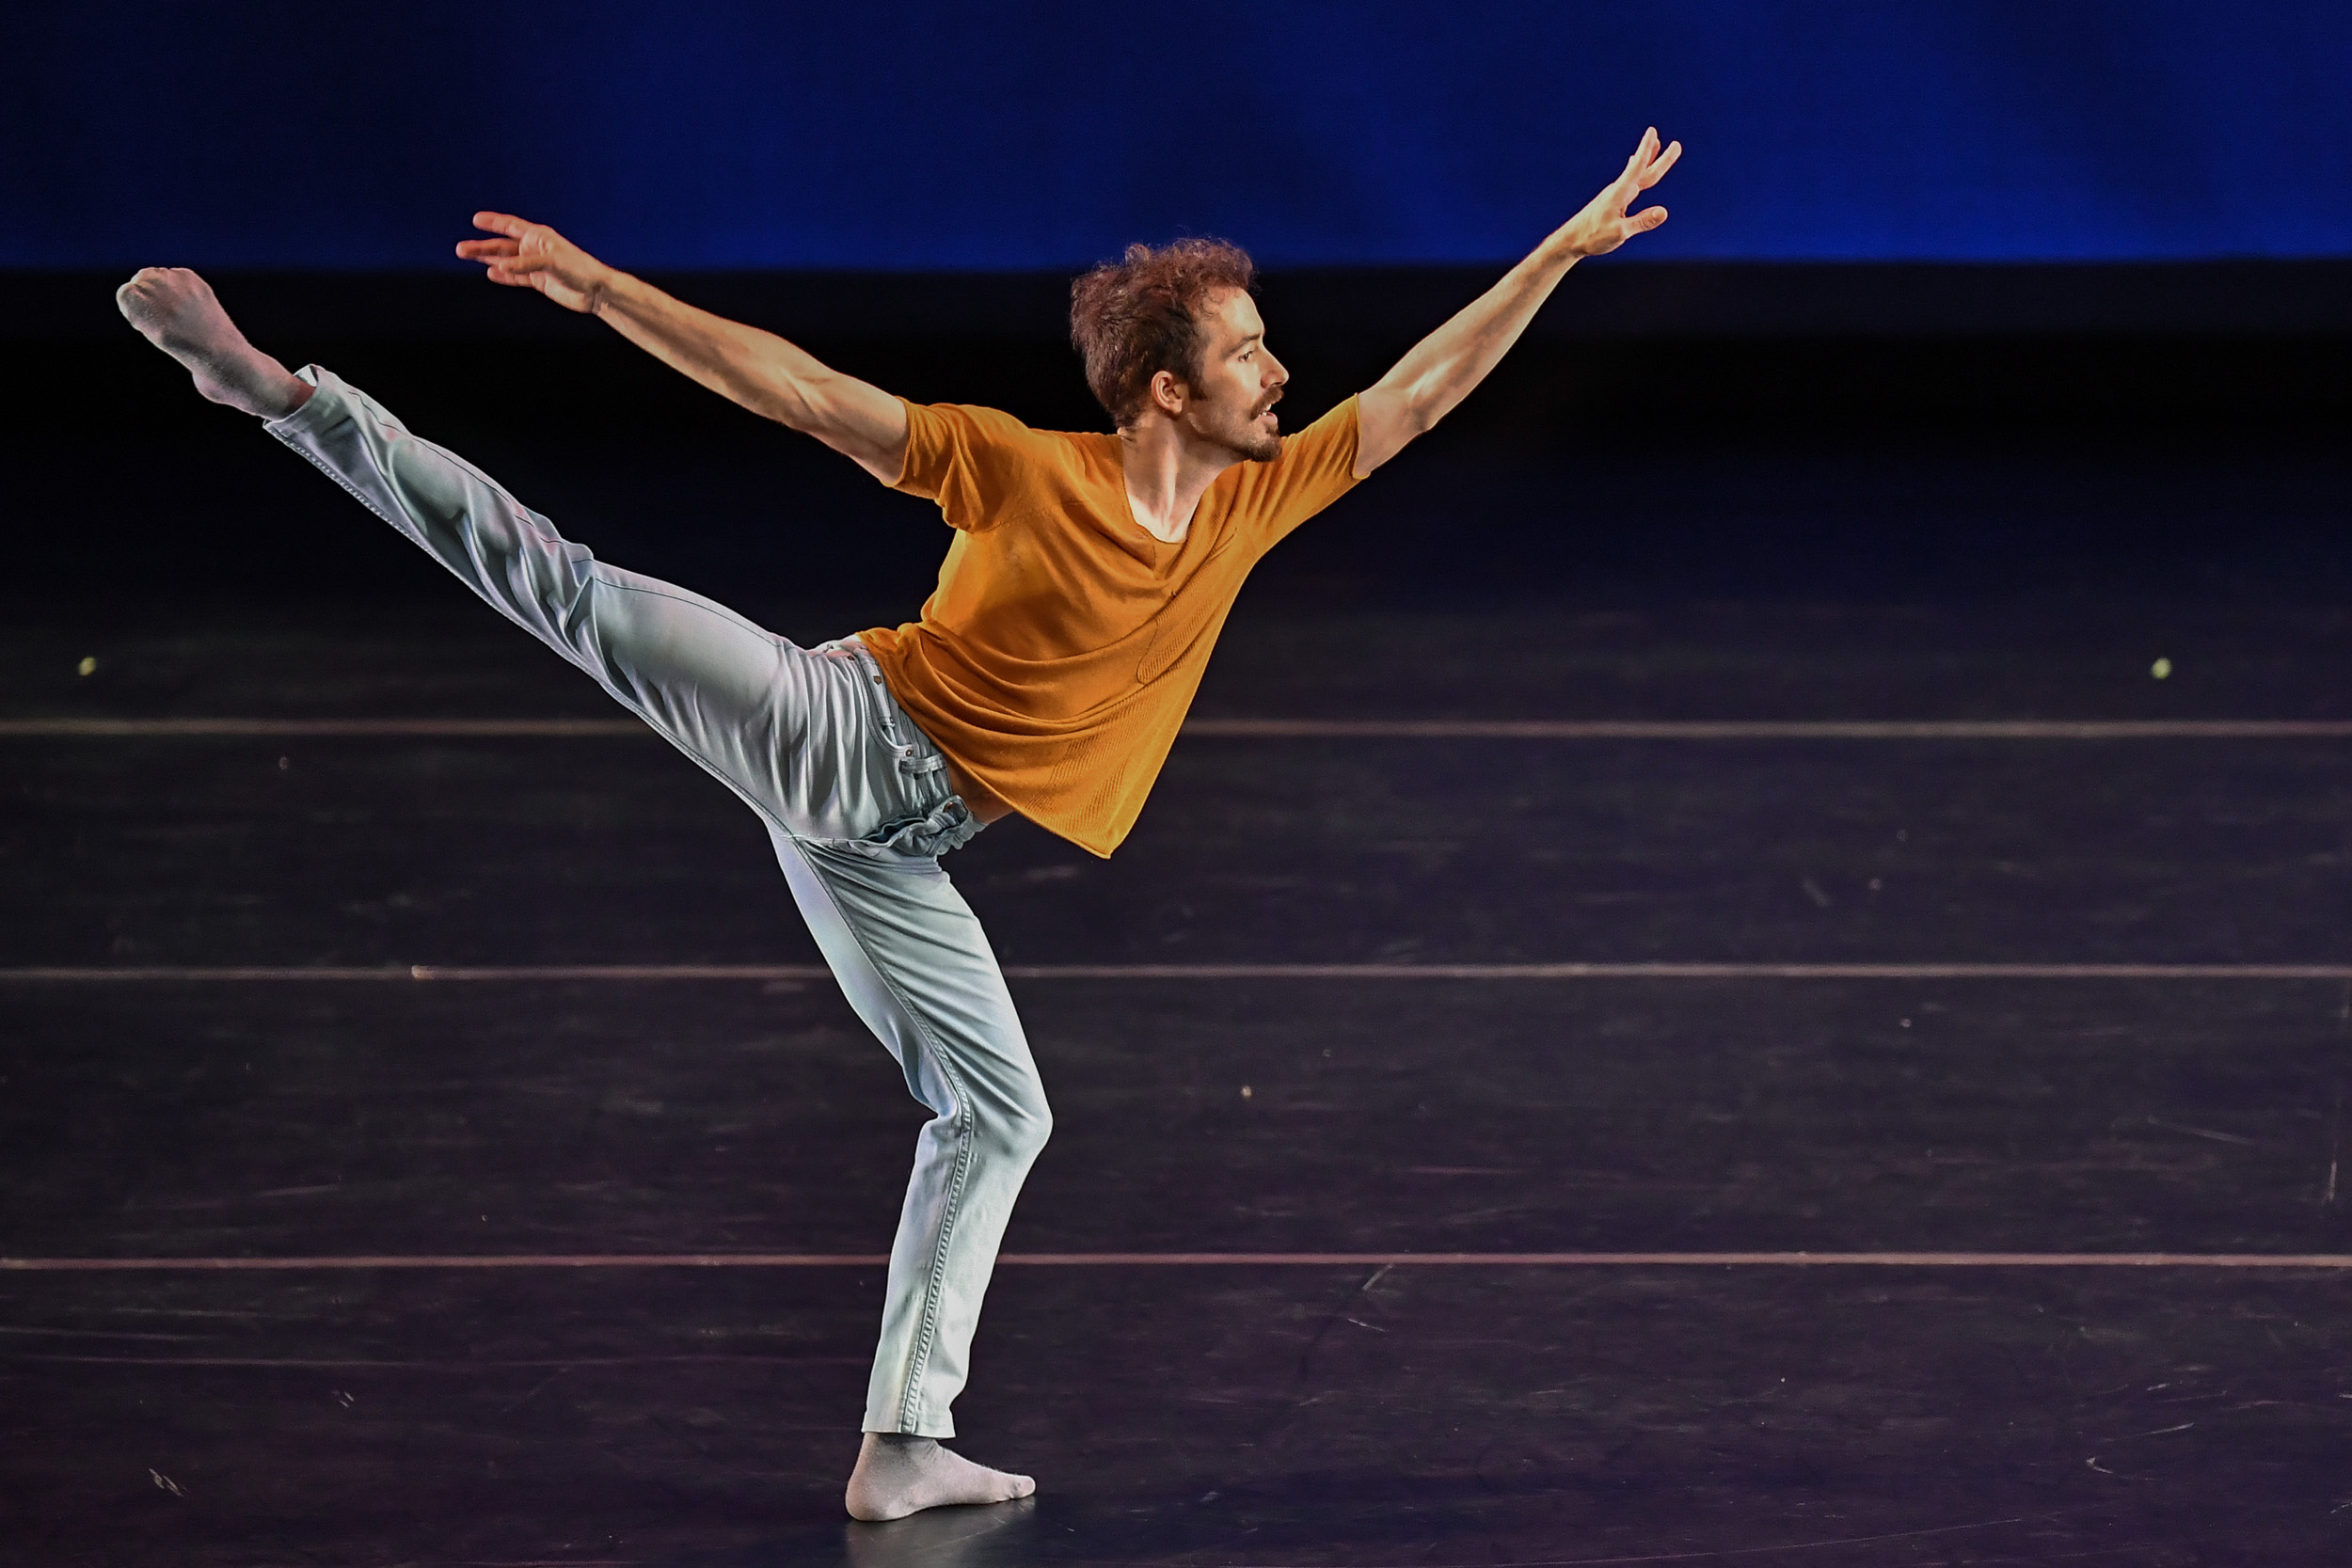 BODYTRAFFIC performing at the Wallis Annenberg Center for the Performing Arts May 31, 2018. o2Joy. Choreography: Richard Siegal. Guzmán Rosado. PHOTO CREDIT: Rob Latour.